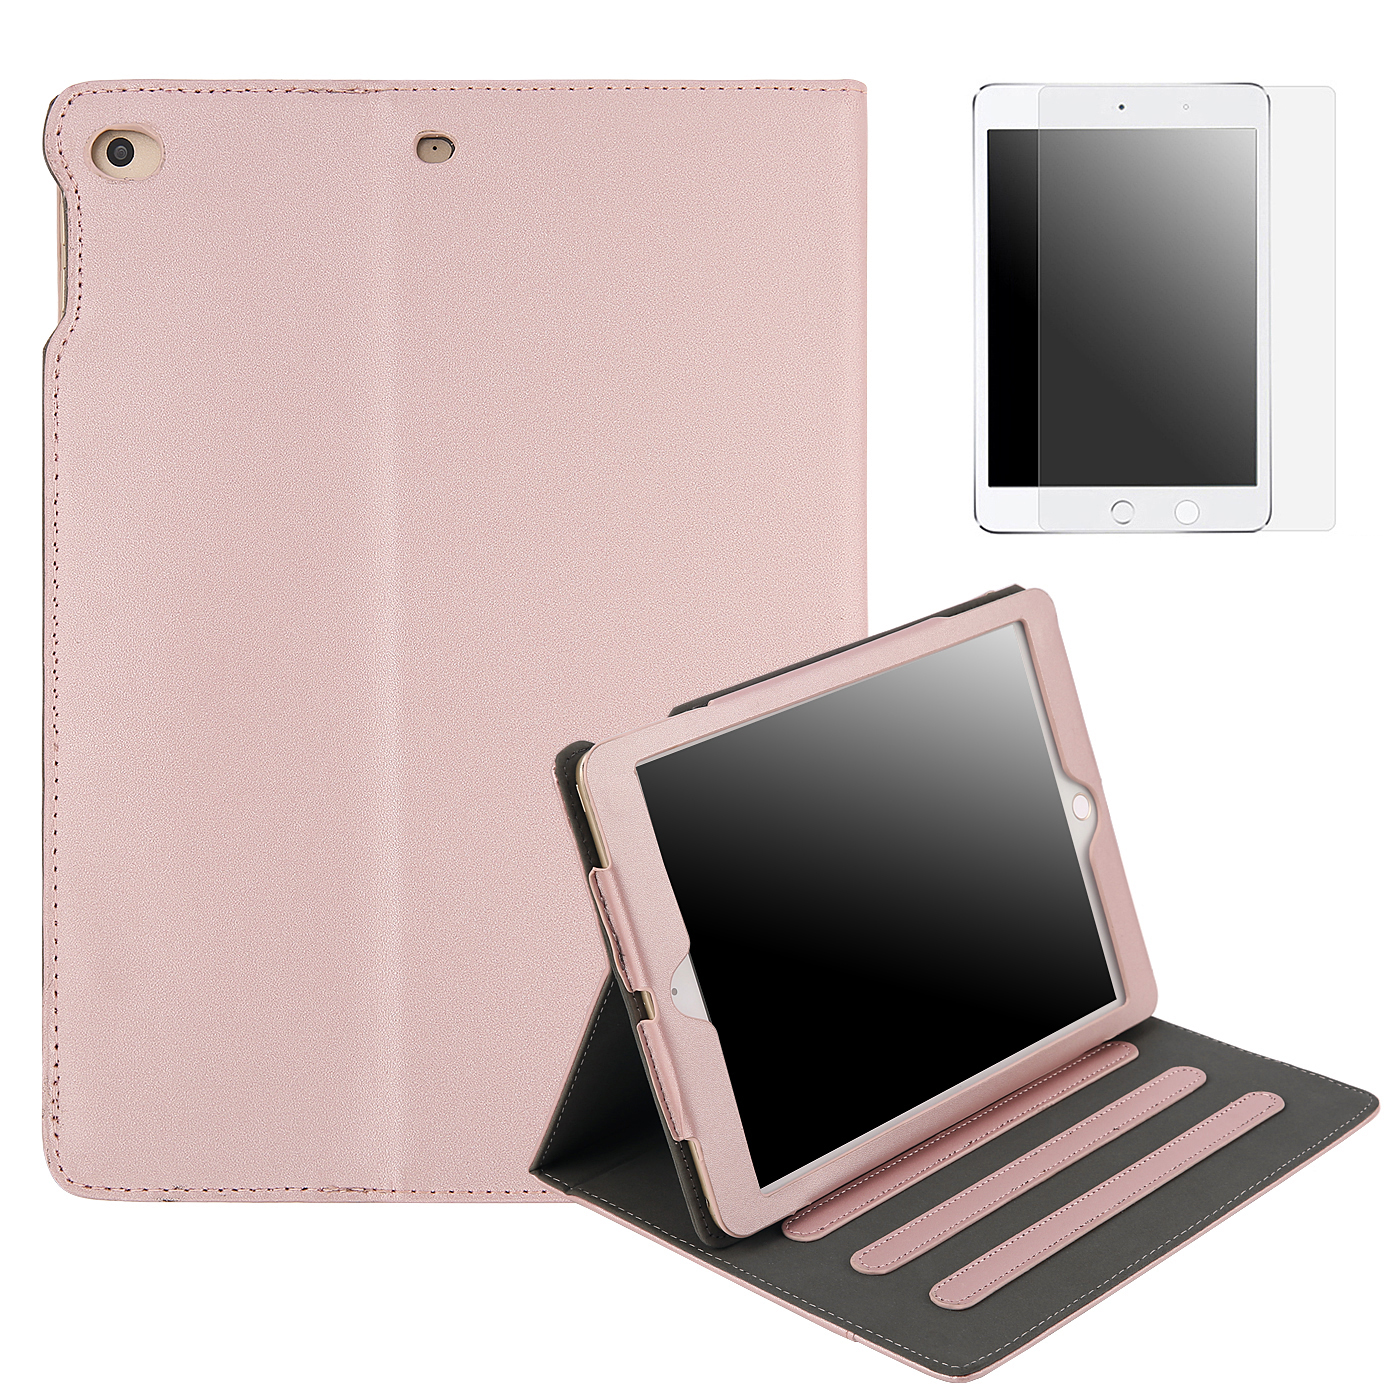 HDE 2017 iPad 9.7 Leather Case with Screen Protector - Vintage Folio Cover Case Multi-Angle Stand for New Apple iPad 9.7 Inch (5th Generation iPad, March 2017) - Retro 90s